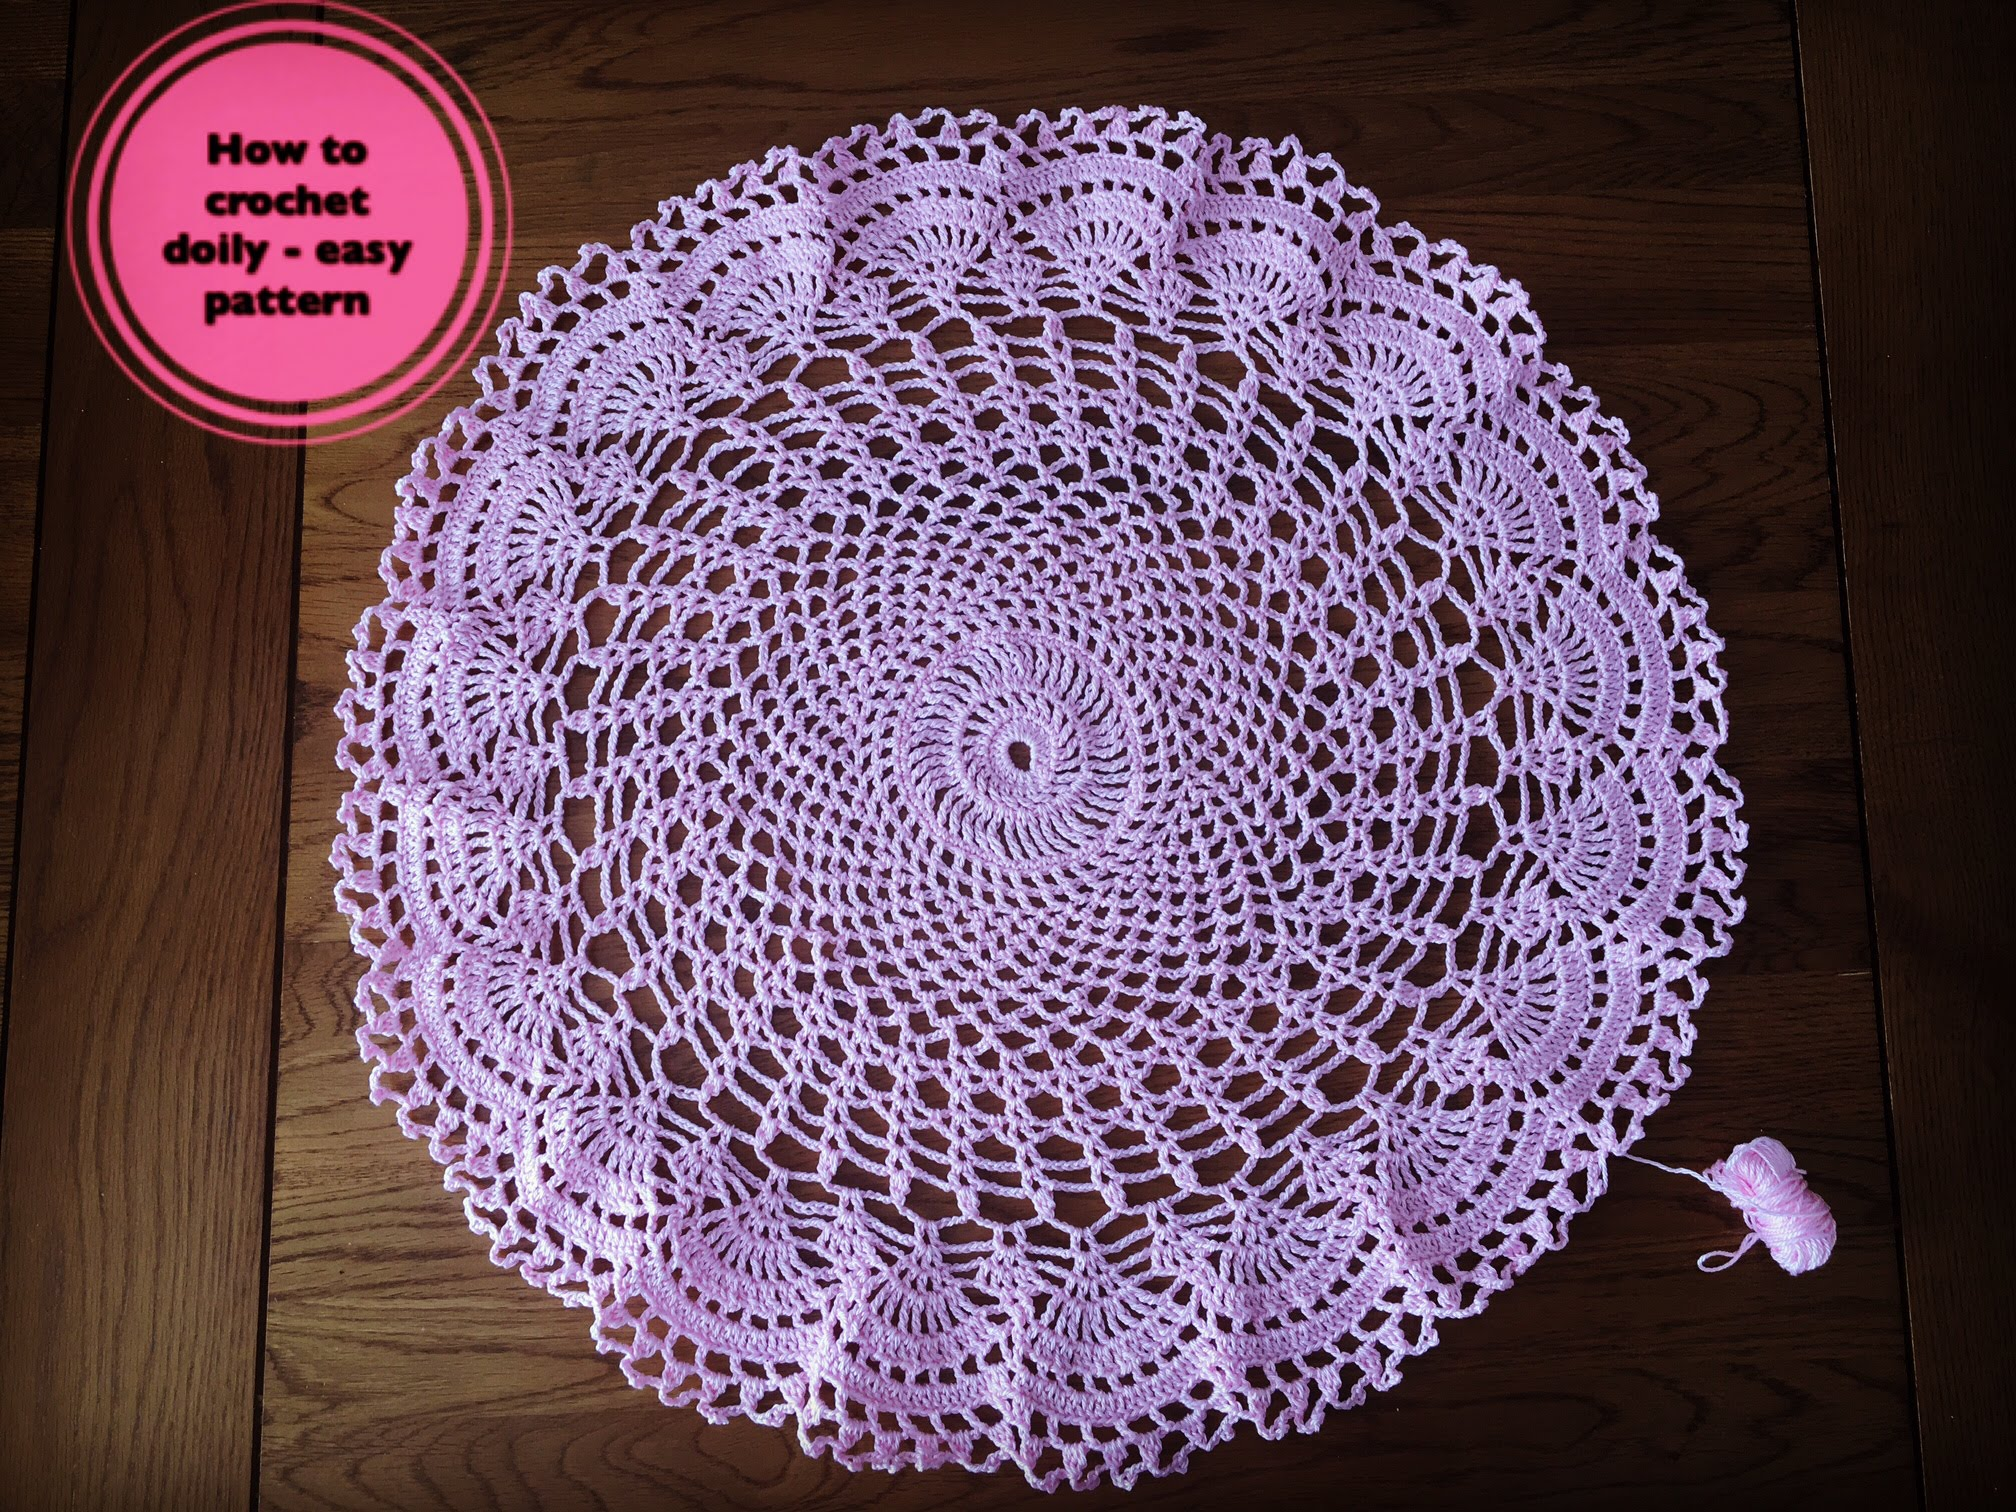 crochet doilies how to crochet doily - easy pattern - youtube THVATZL